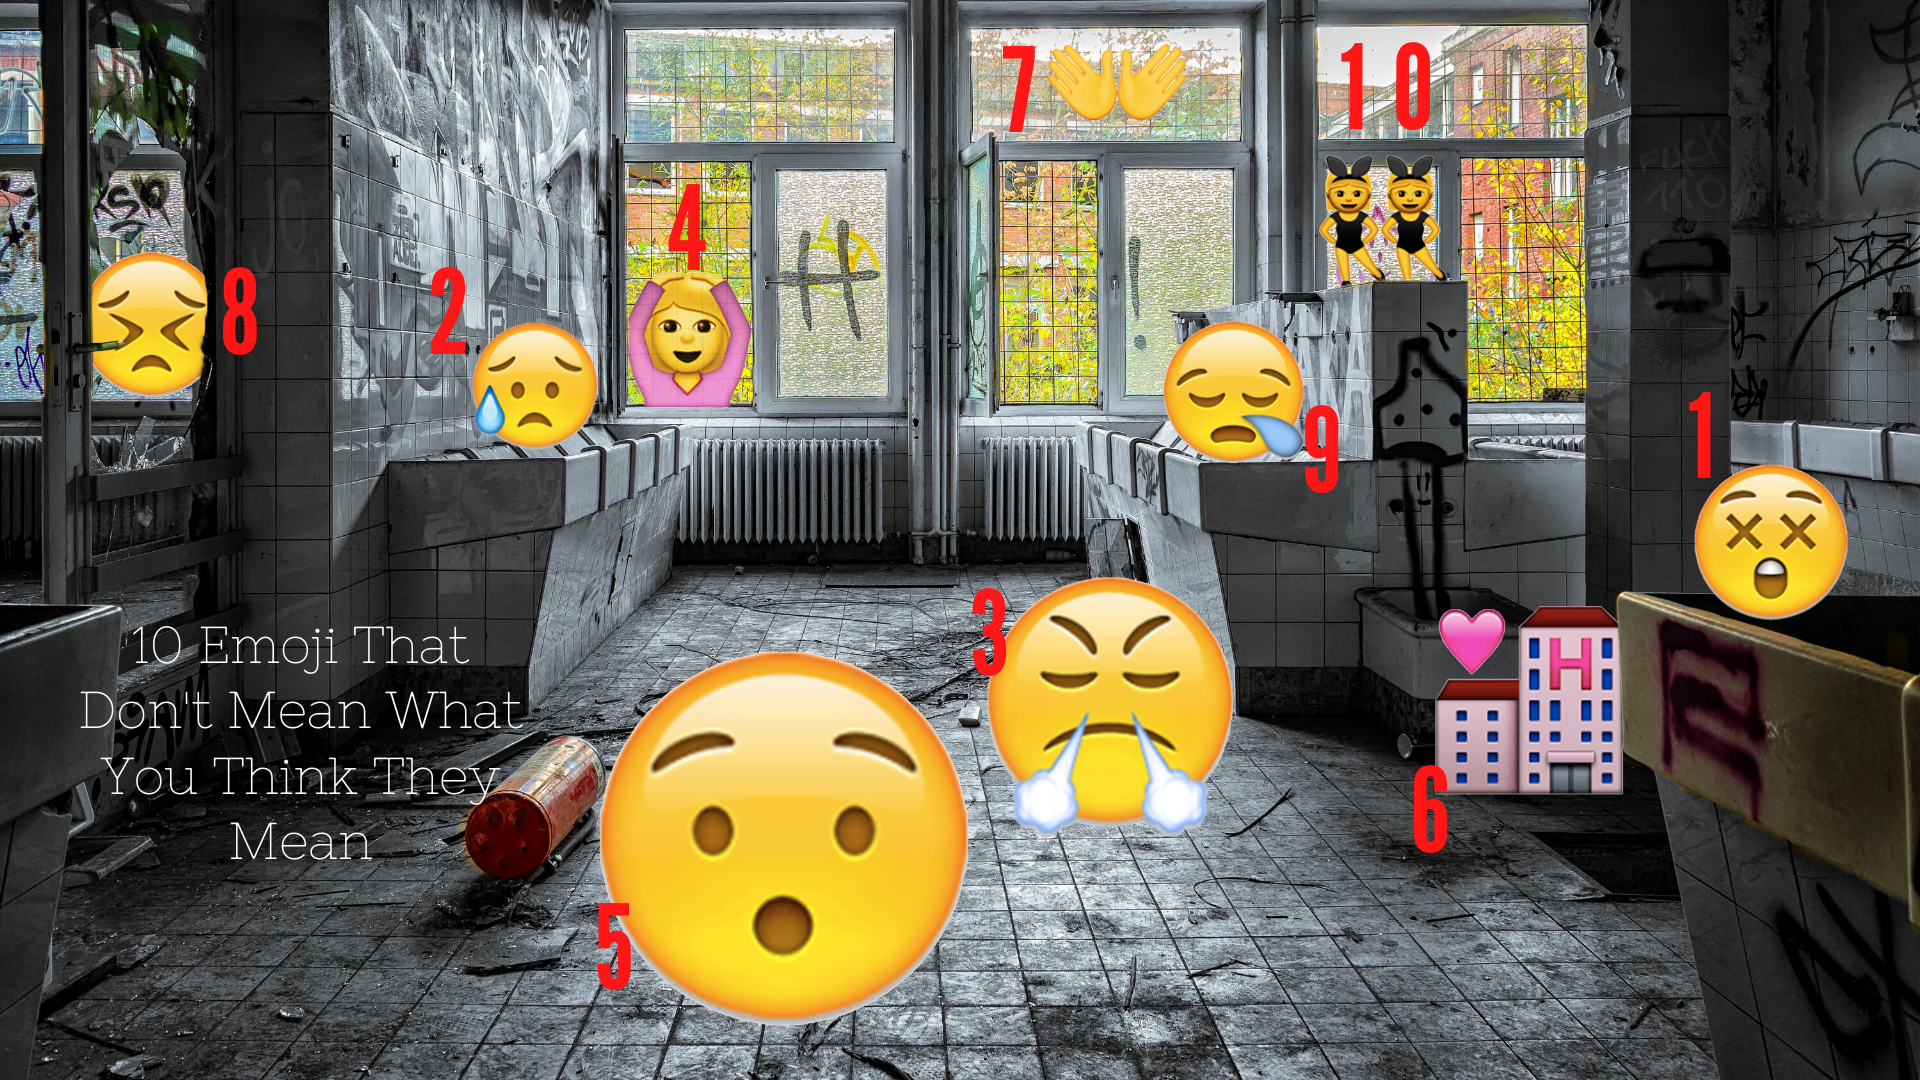 10 Emoji That Don't Mean What You Think They Mean - a selection of widley misunderstood emoji in an abandoned building